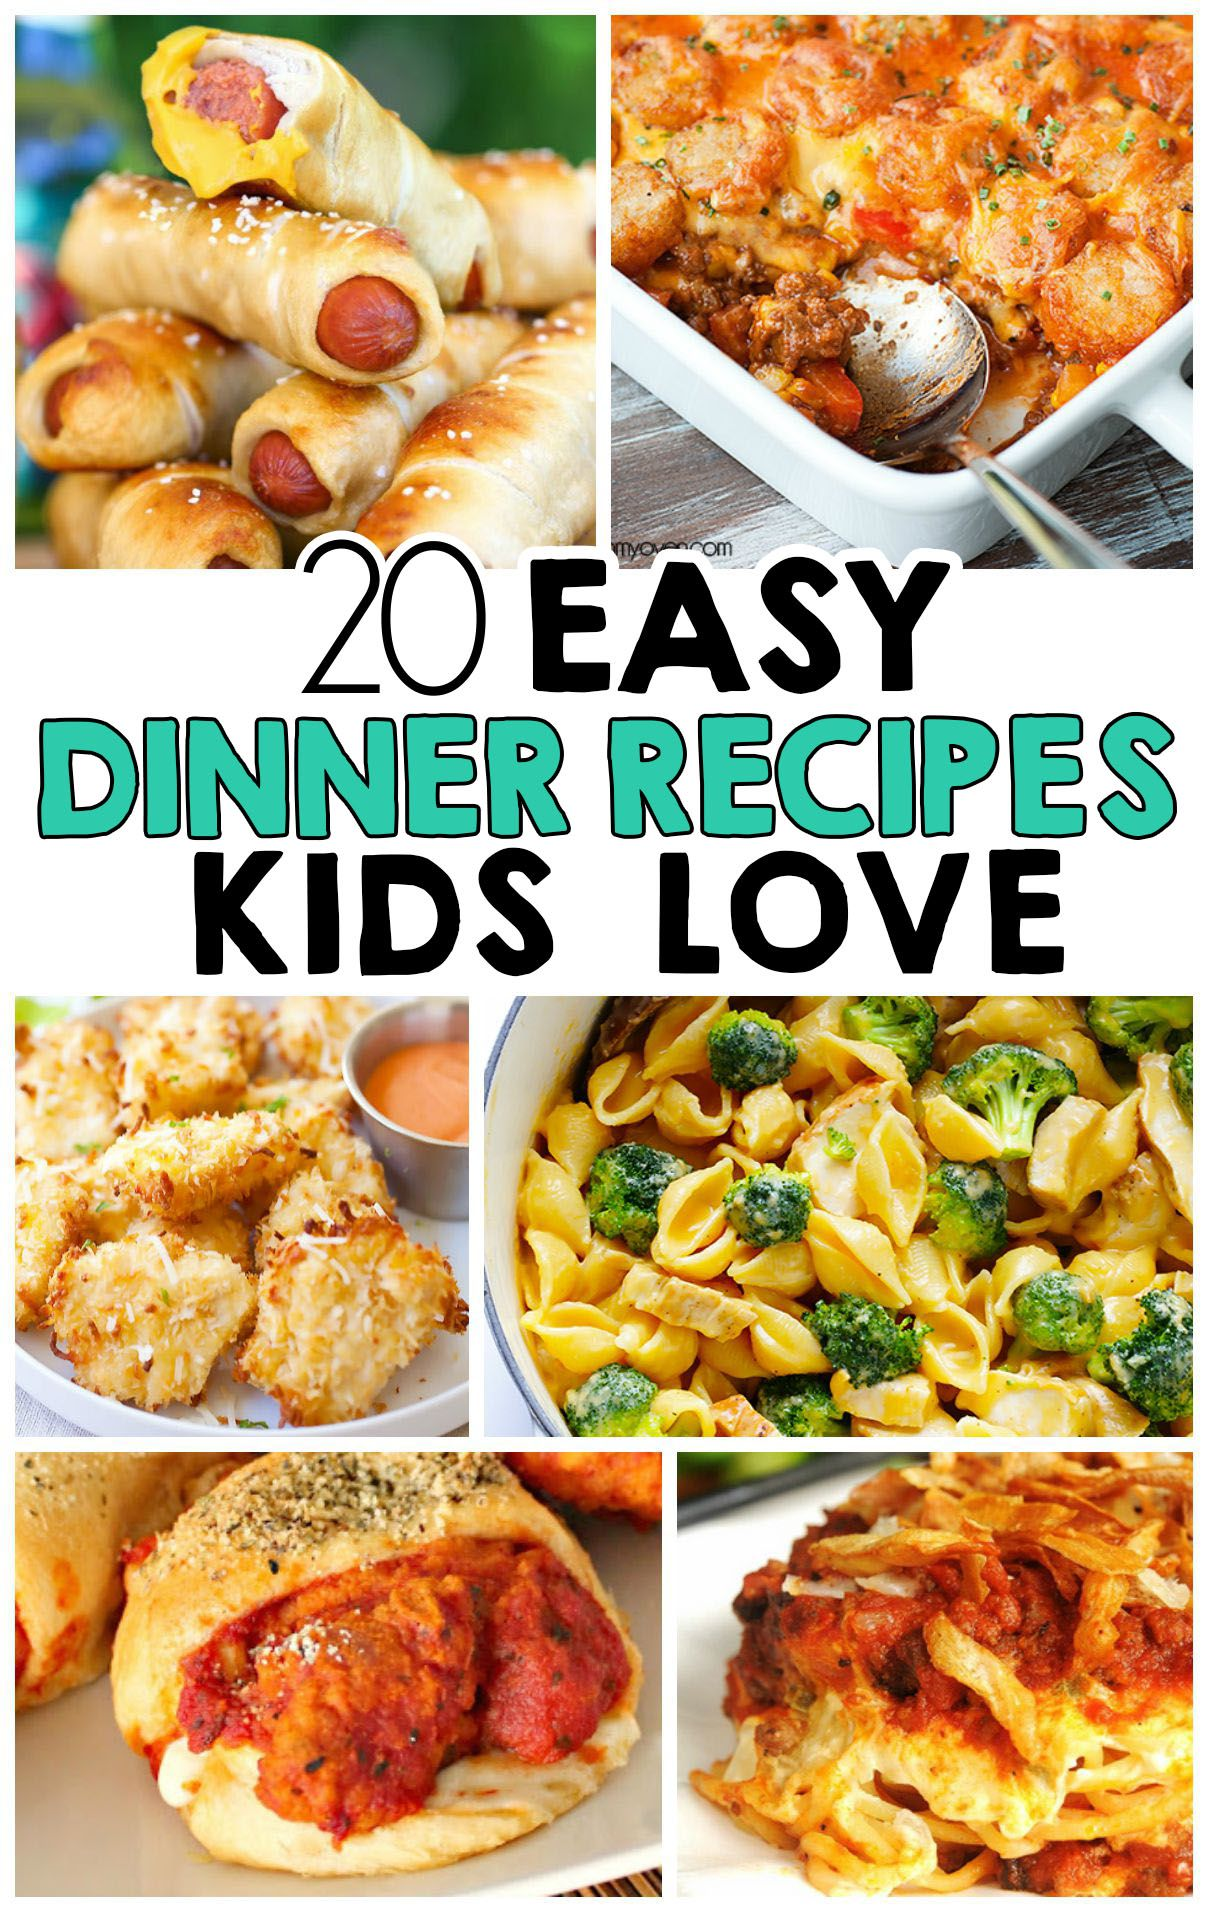 20 easy dinner recipes that kids love nio y comidas 20 easy dinner recipes that kids love forumfinder Images